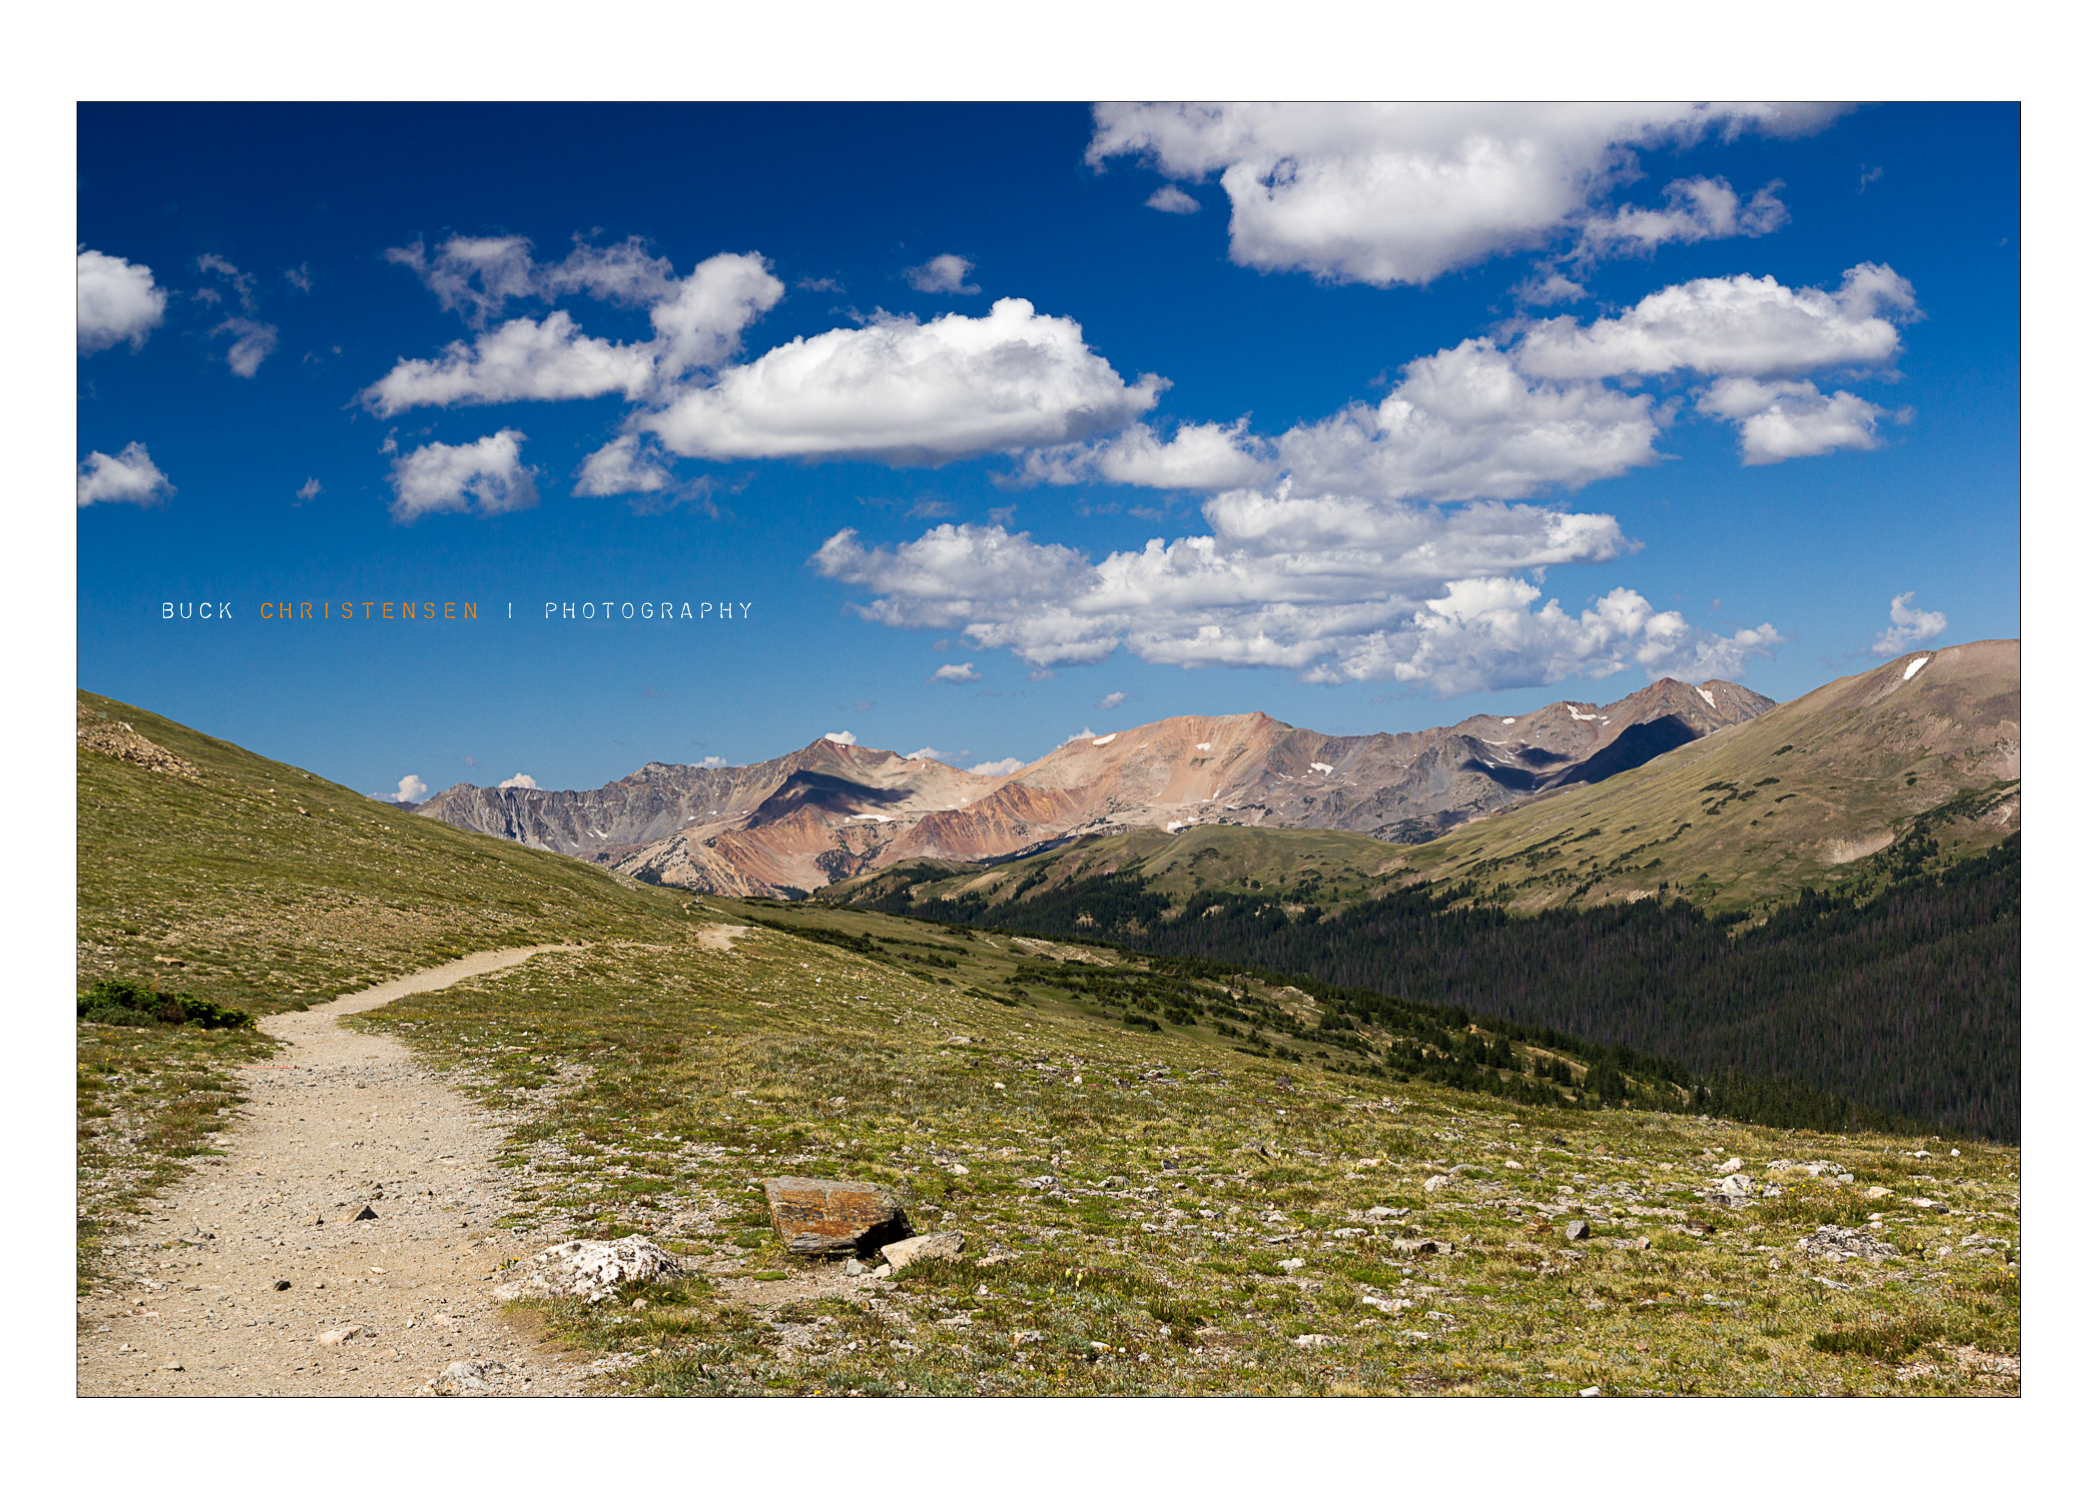 Ute Trail, Rocky Mountain National Park, Colorado